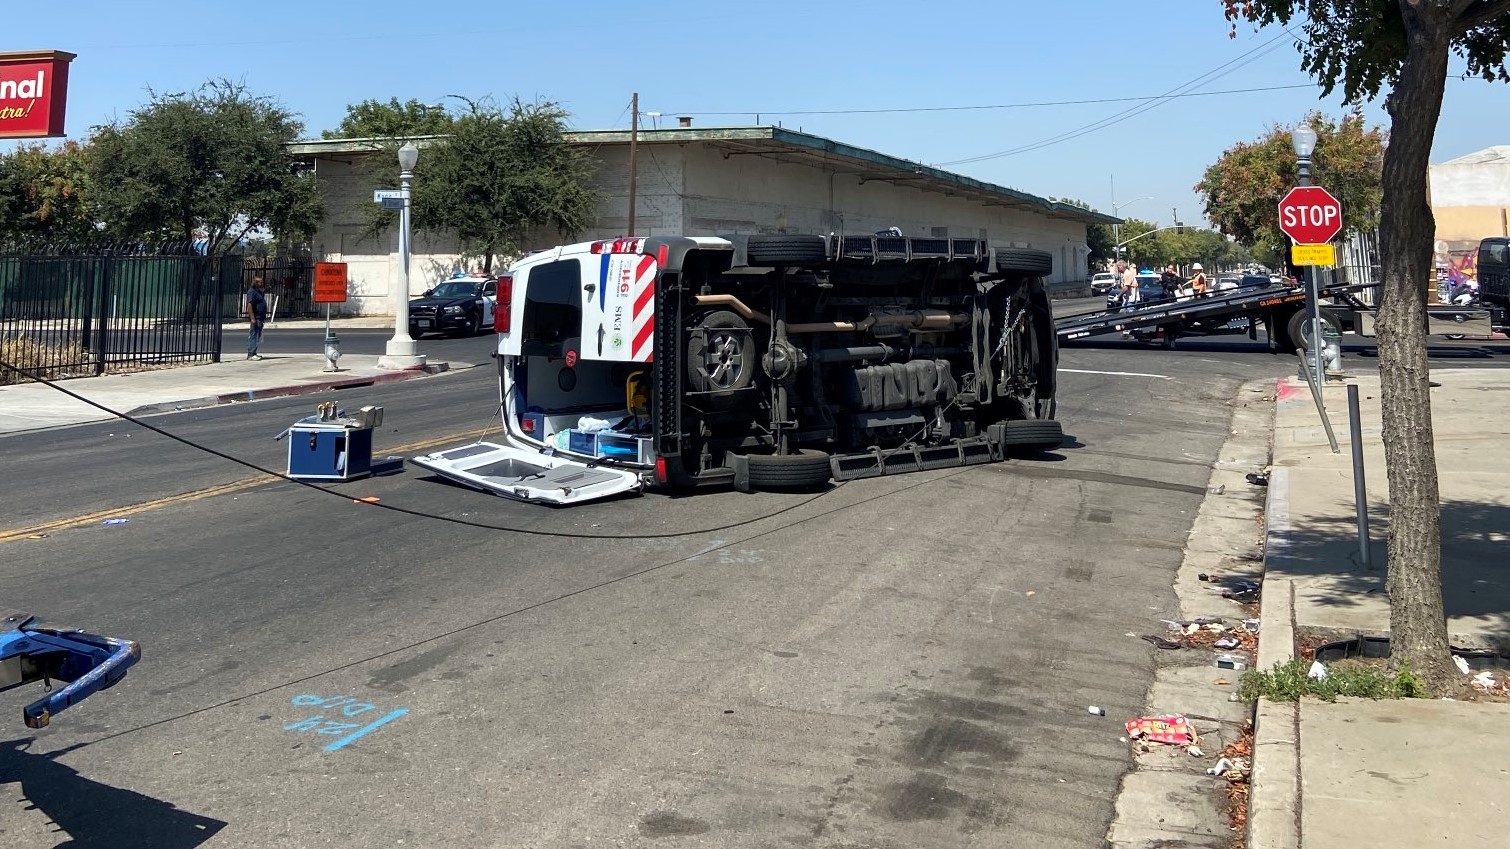 Ambulance on its side after crash in Downtown Fresno